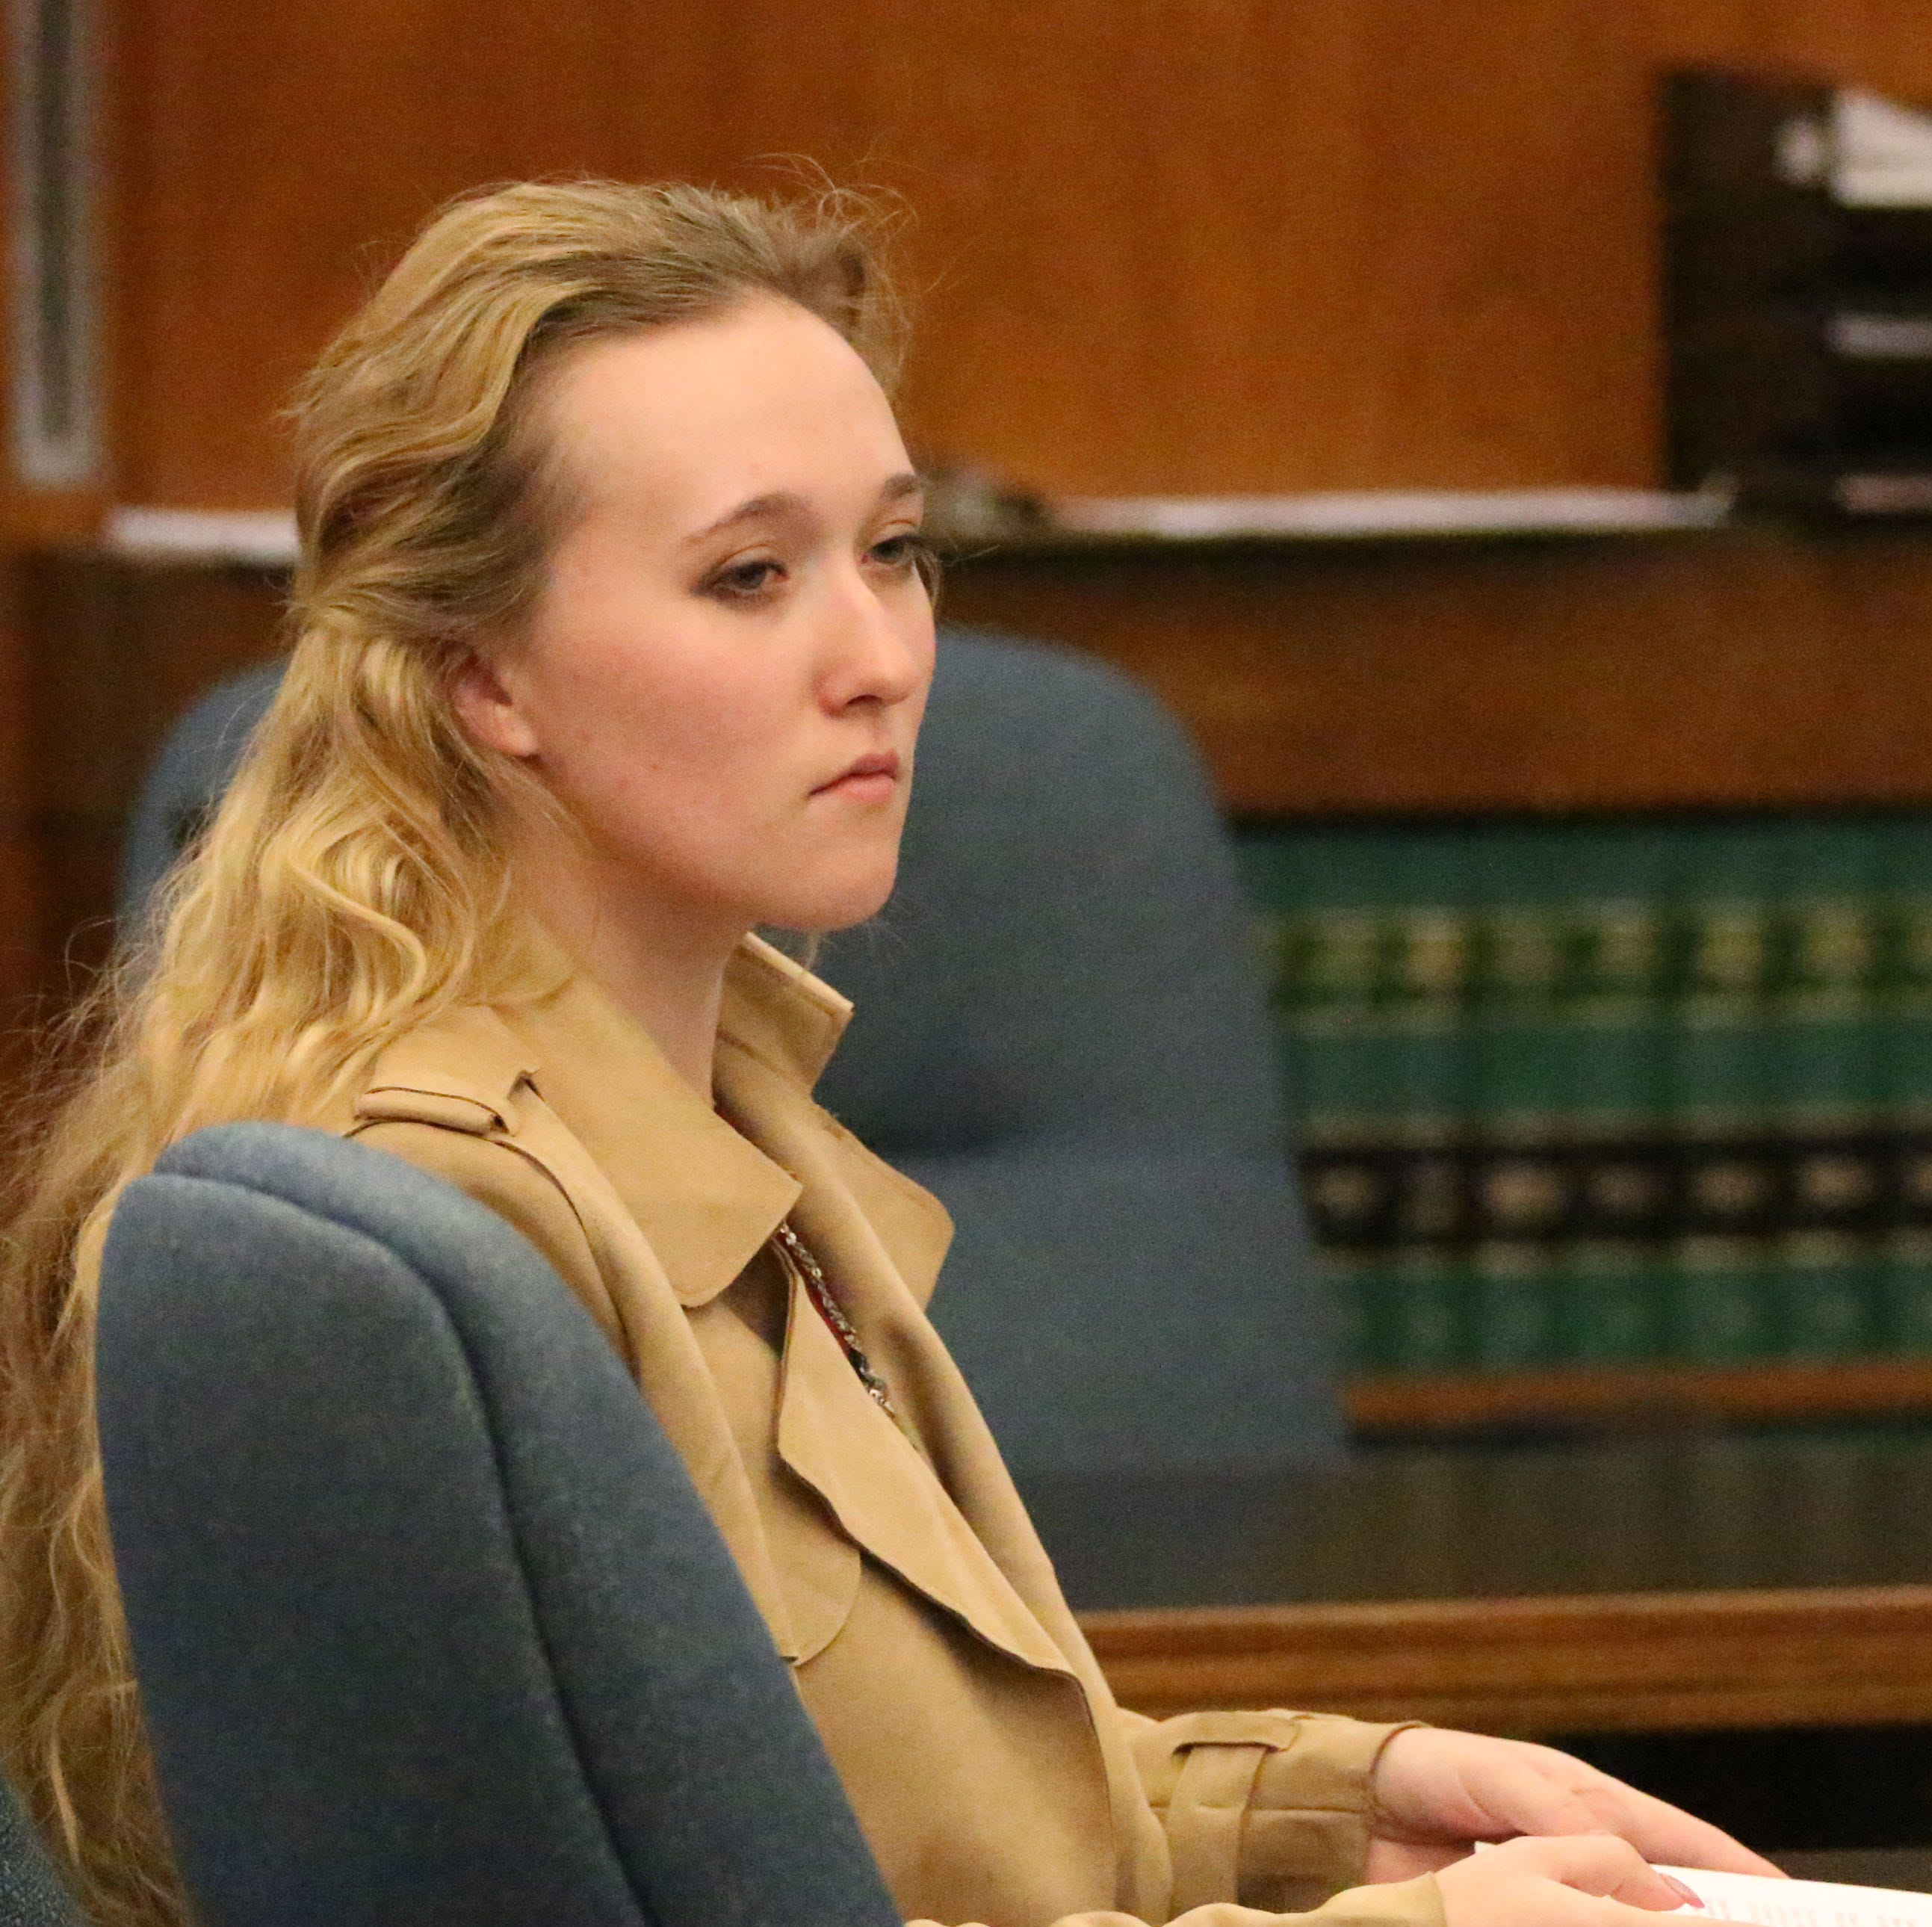 Sheboygan Kinship Companions dead dogs case: Breanna Mikula gets two years probation